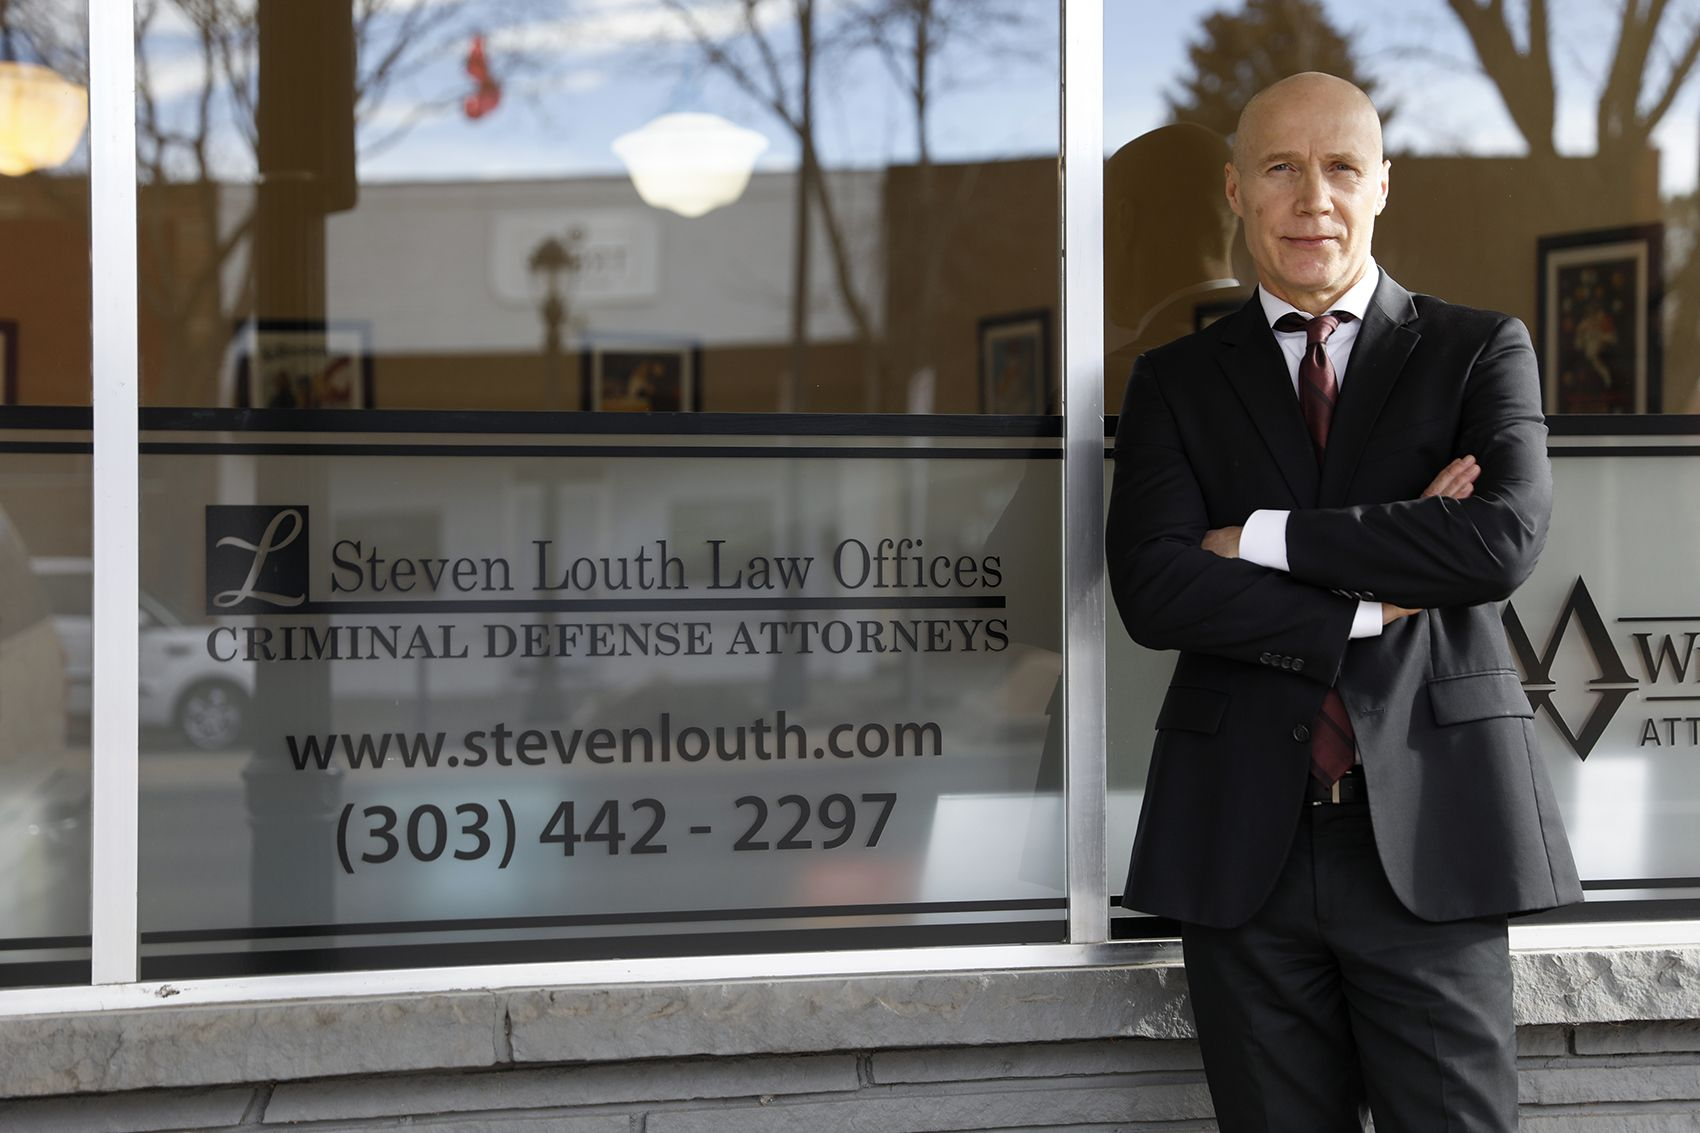 Steven Louth Law Offices